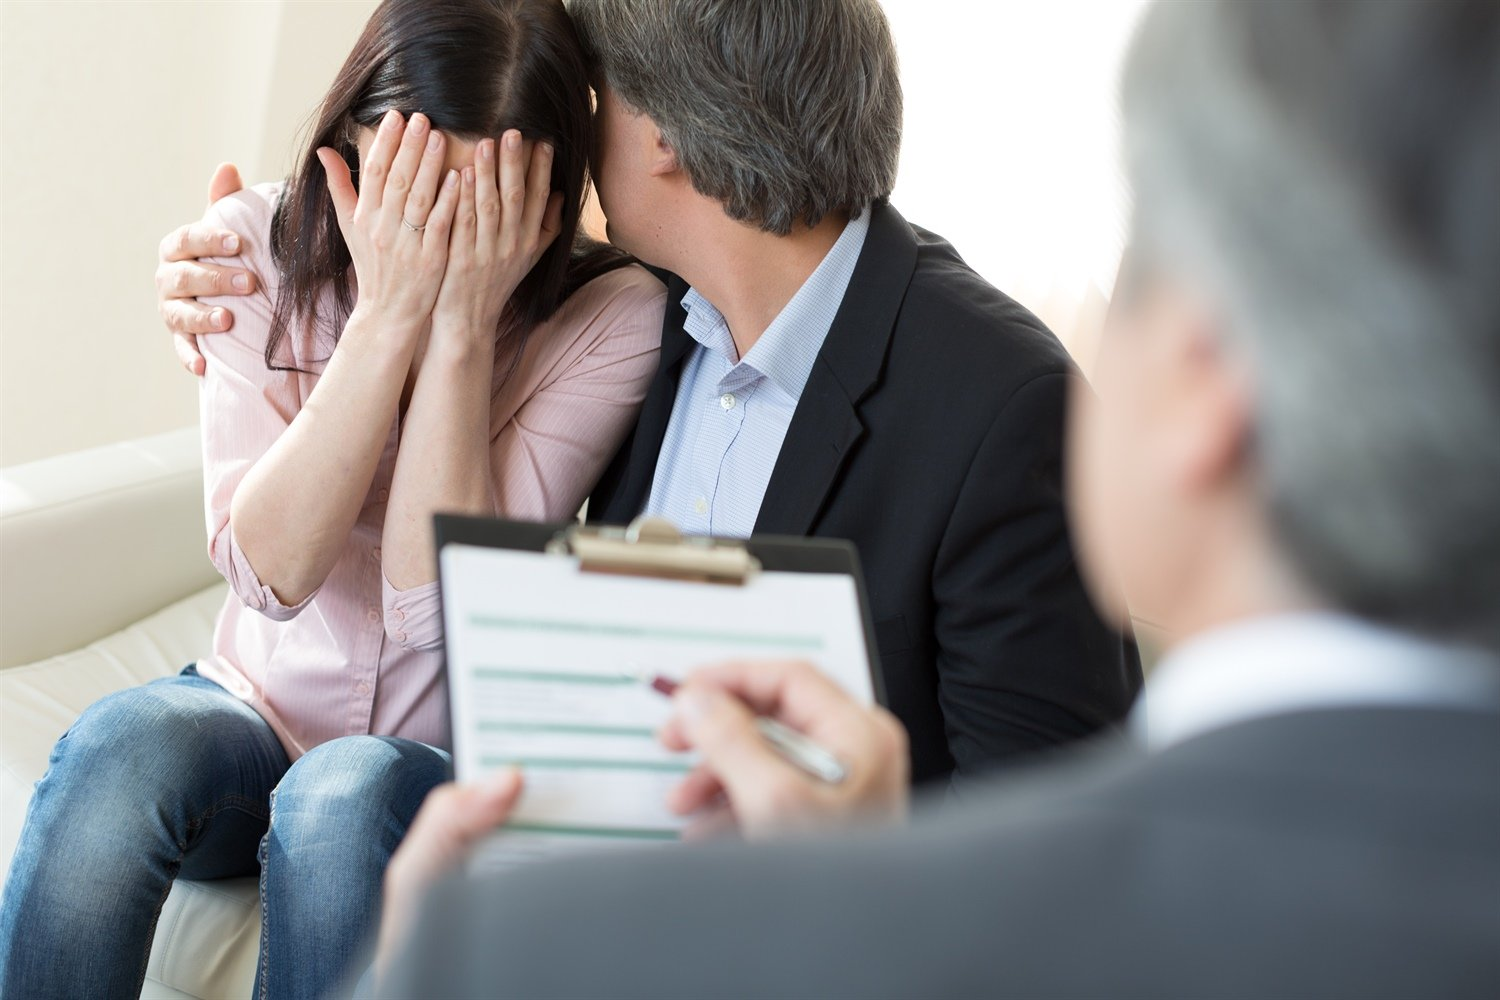 Sex Addiction Counseling Treatment Options